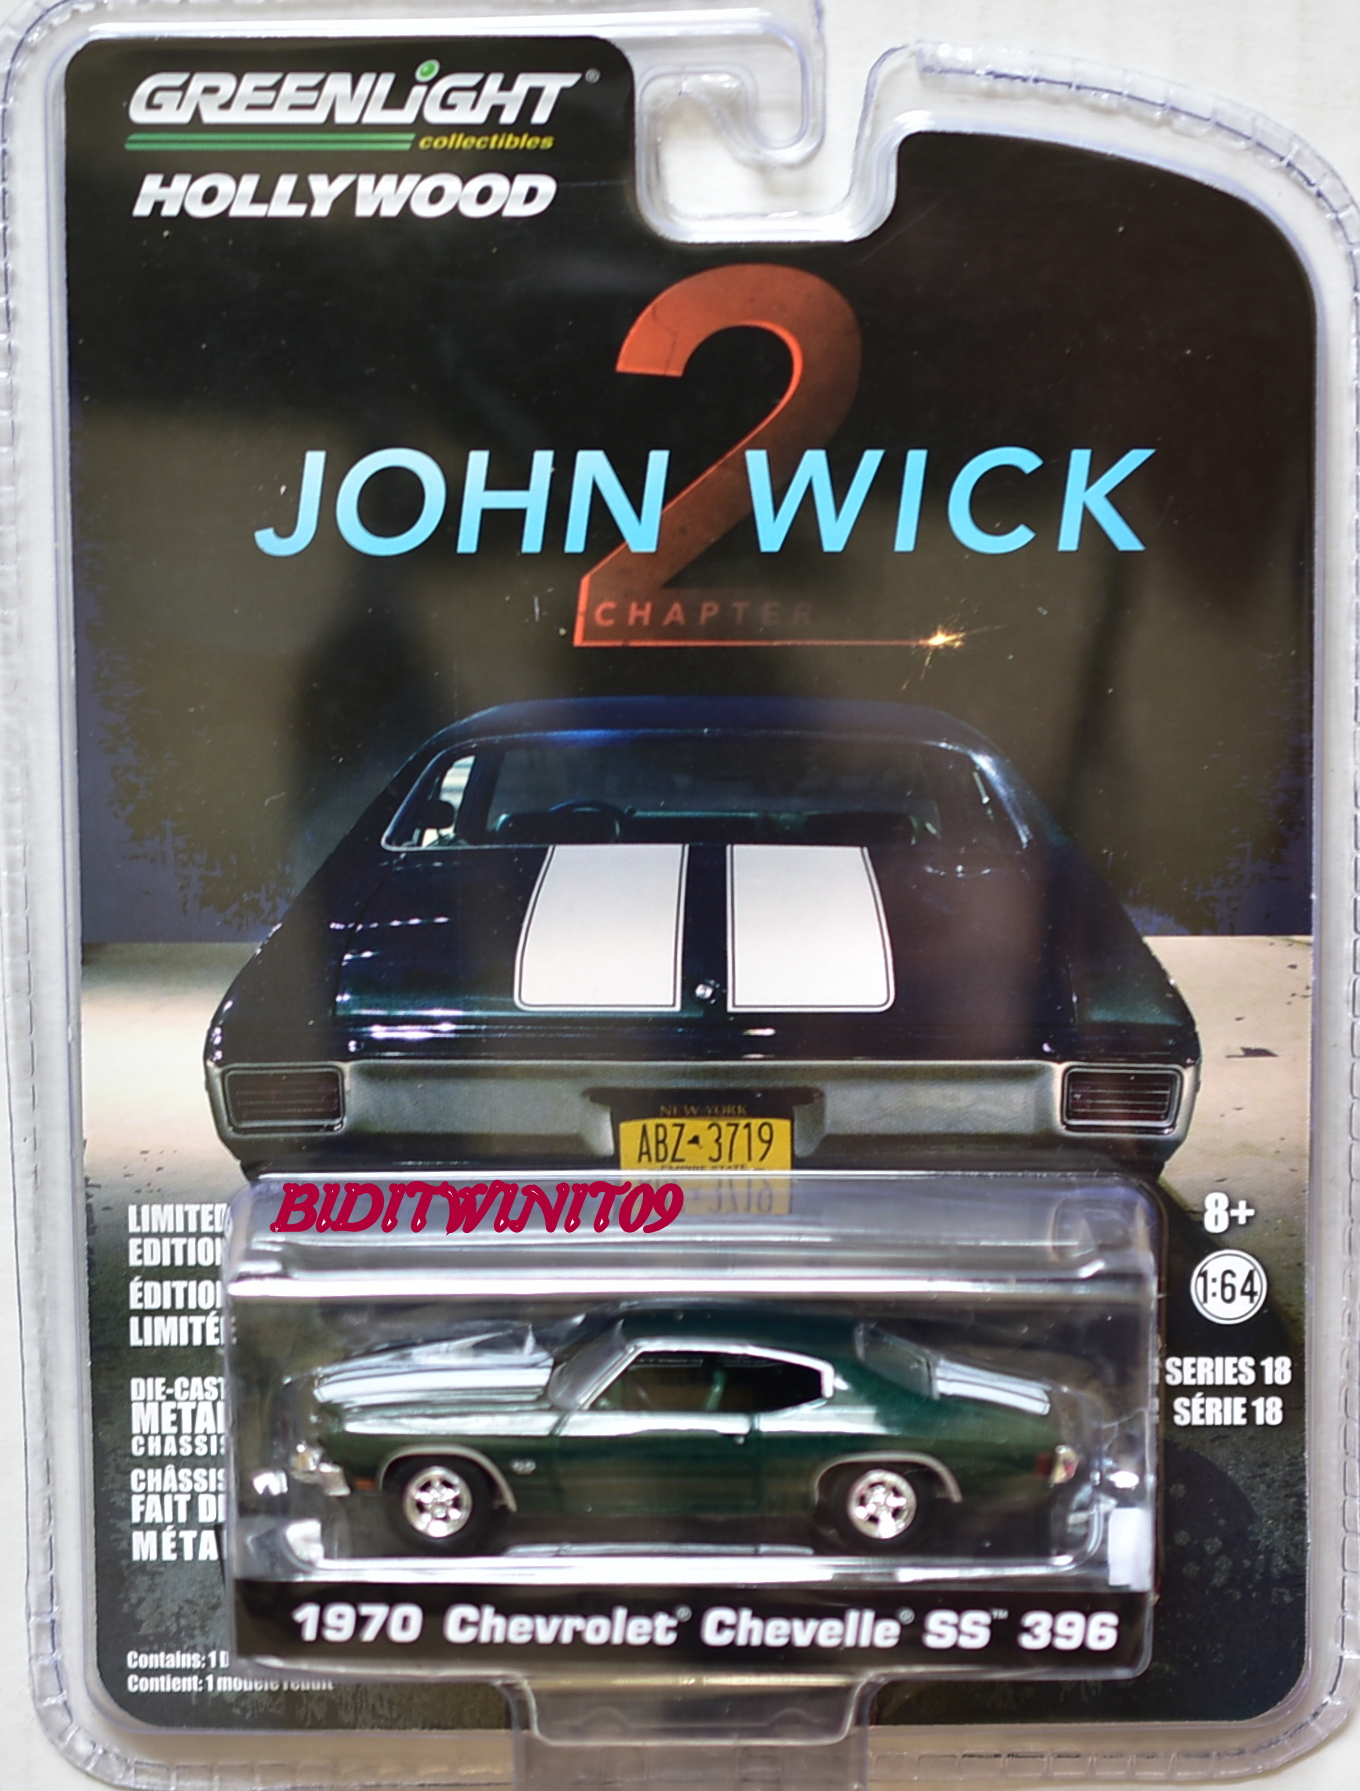 GREENLIGHT HOLLYWOOD SERIES 18 JOHN WICK 2 1970 CHEVROLET CHEVELLE SS 396